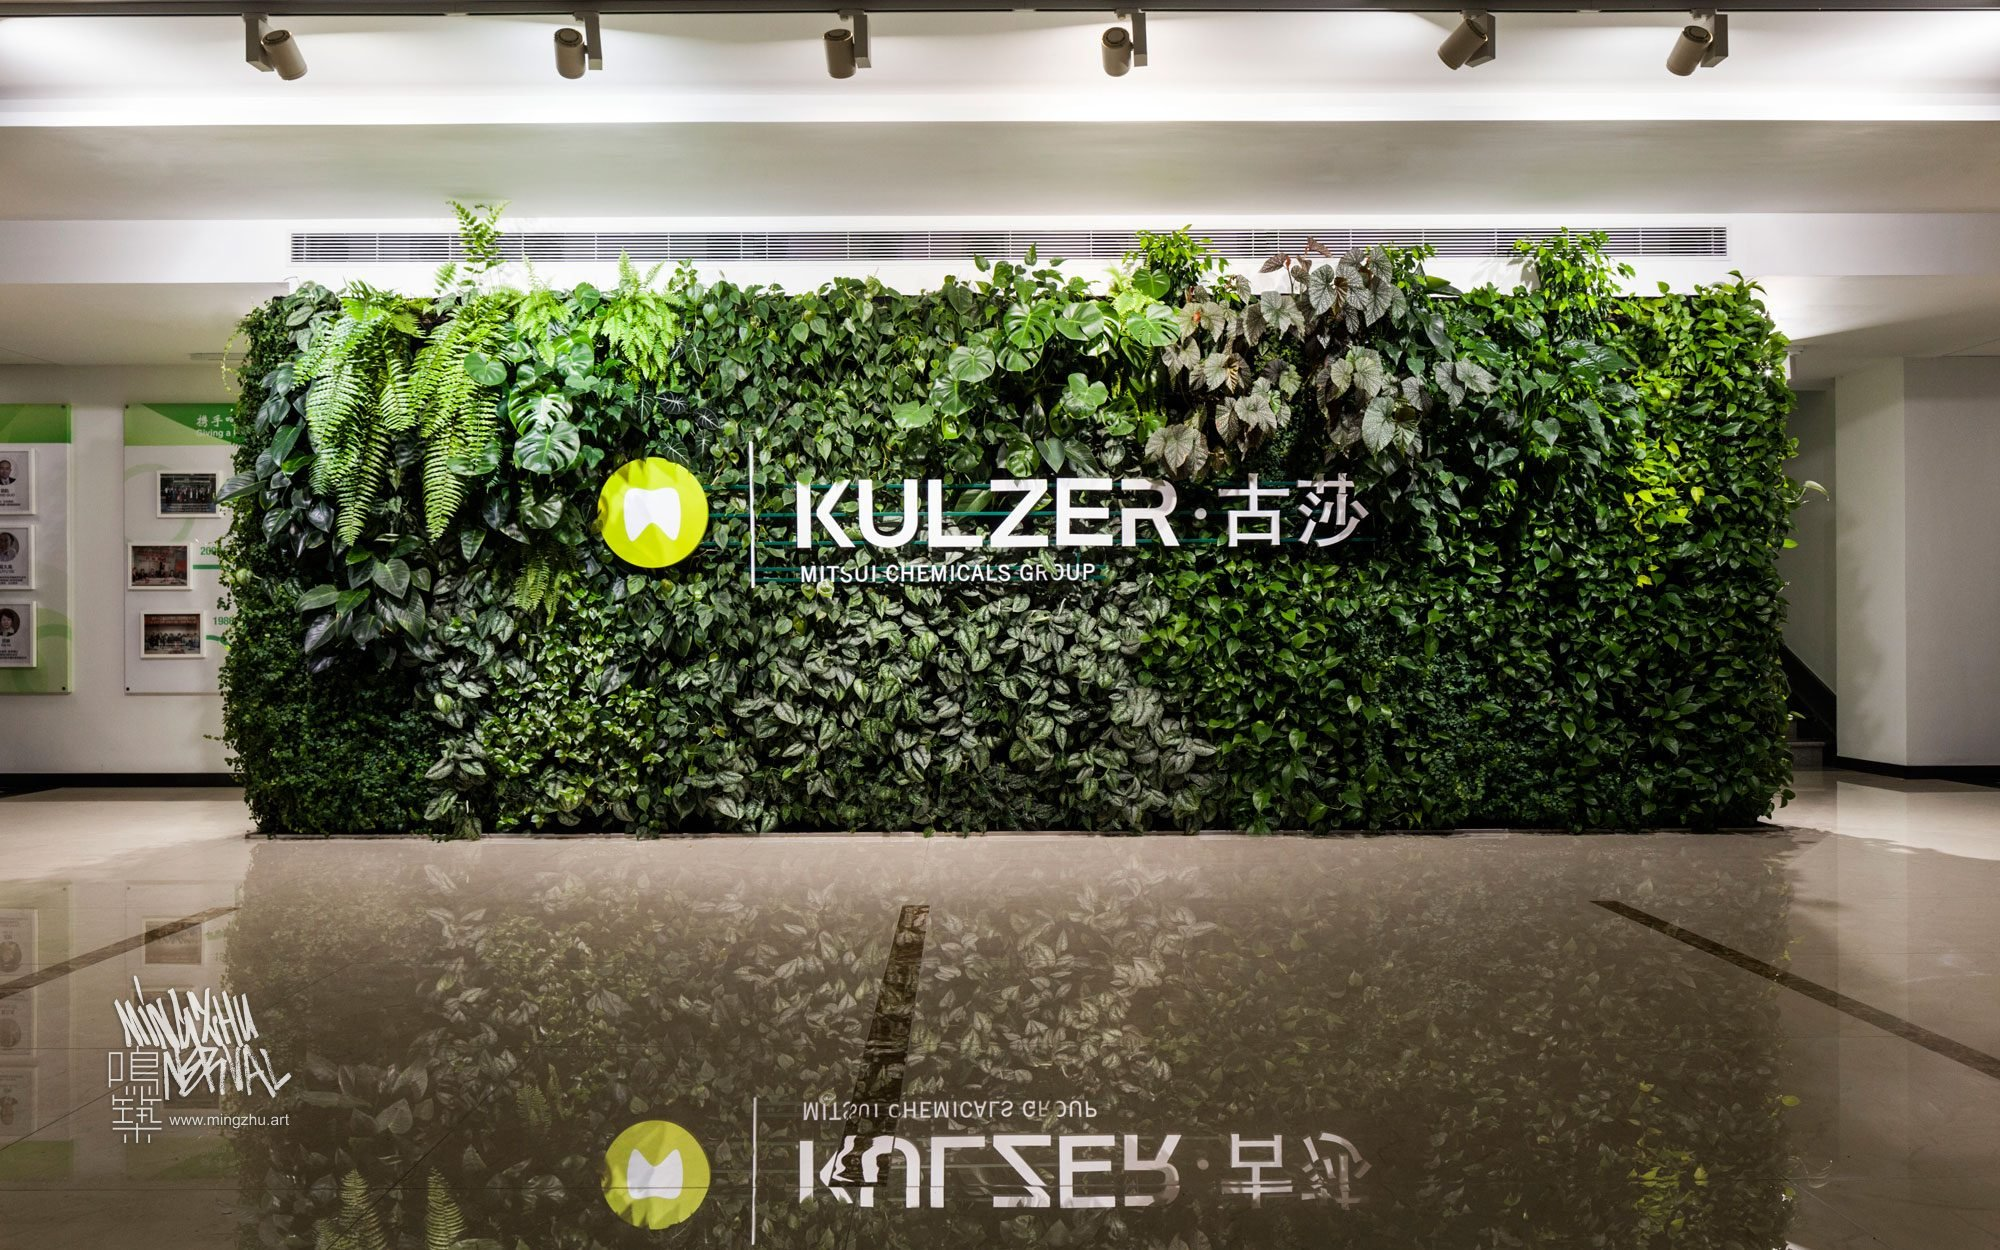 At Mingzhu Nerval, we thrive at creating the most beautiful vertical gardens in the world. For Kulzer, we created a healthy nature workspace design - Shanghai, 2016.